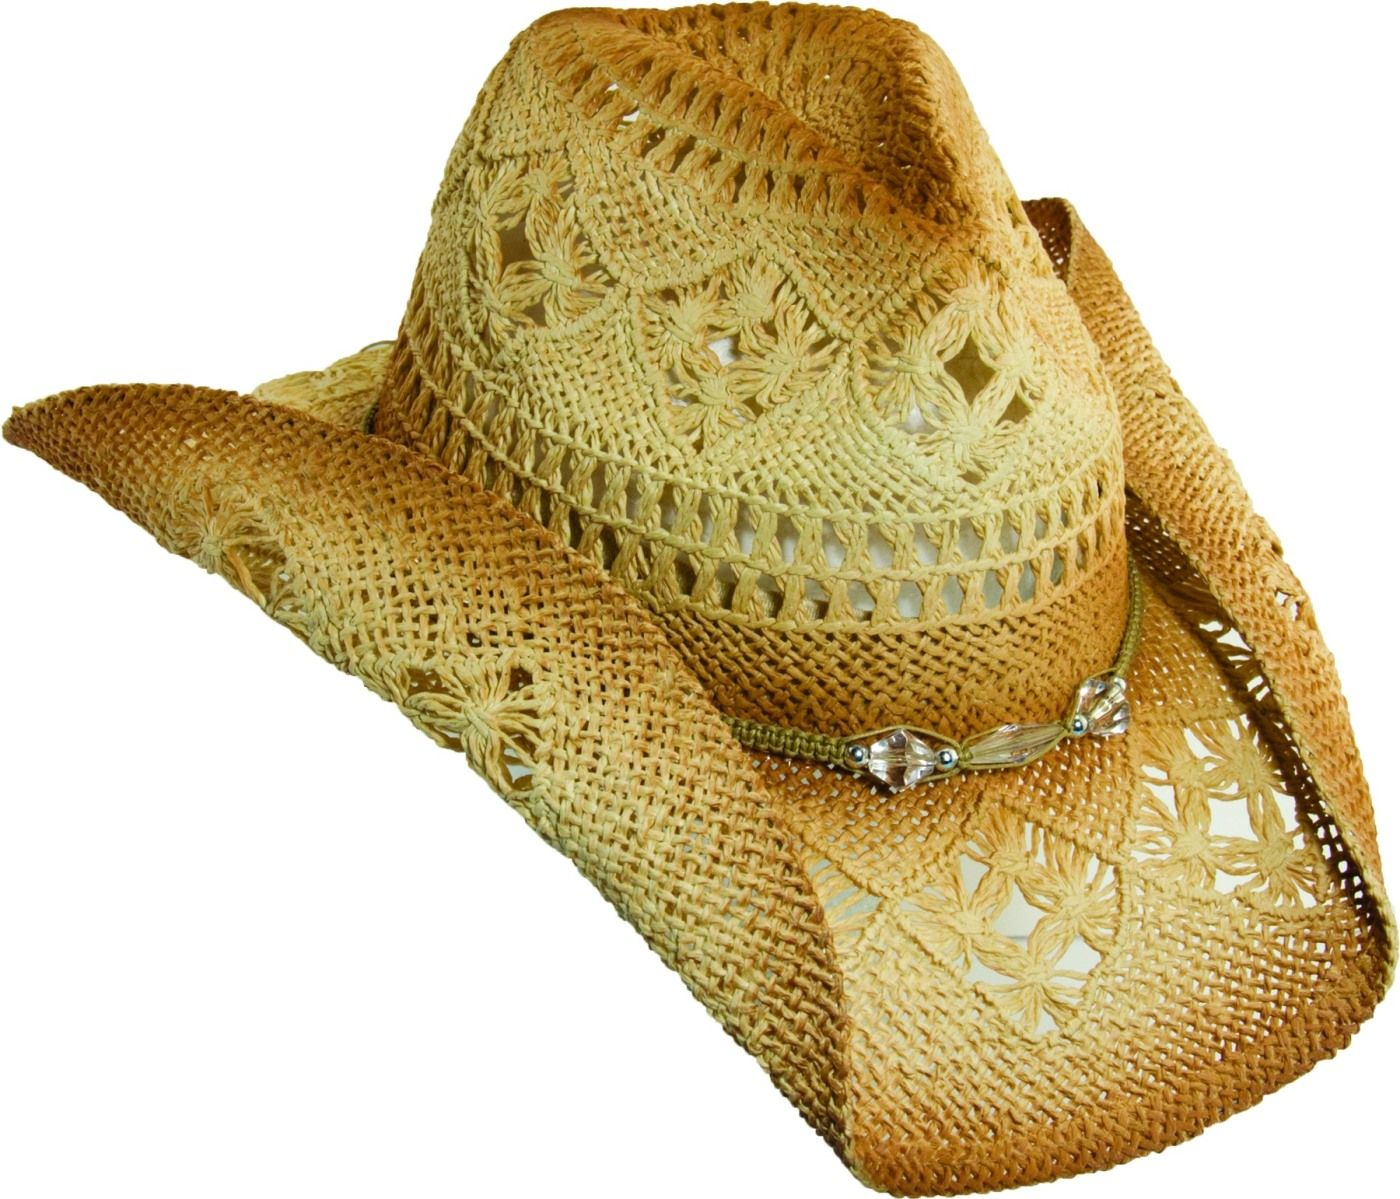 3552063236d Features and Benefits  Women s Straw Cowboy Hat w  shapeable brim for the  perfect summer style. Glass beads trim the crown of the hat giving just the  right ...